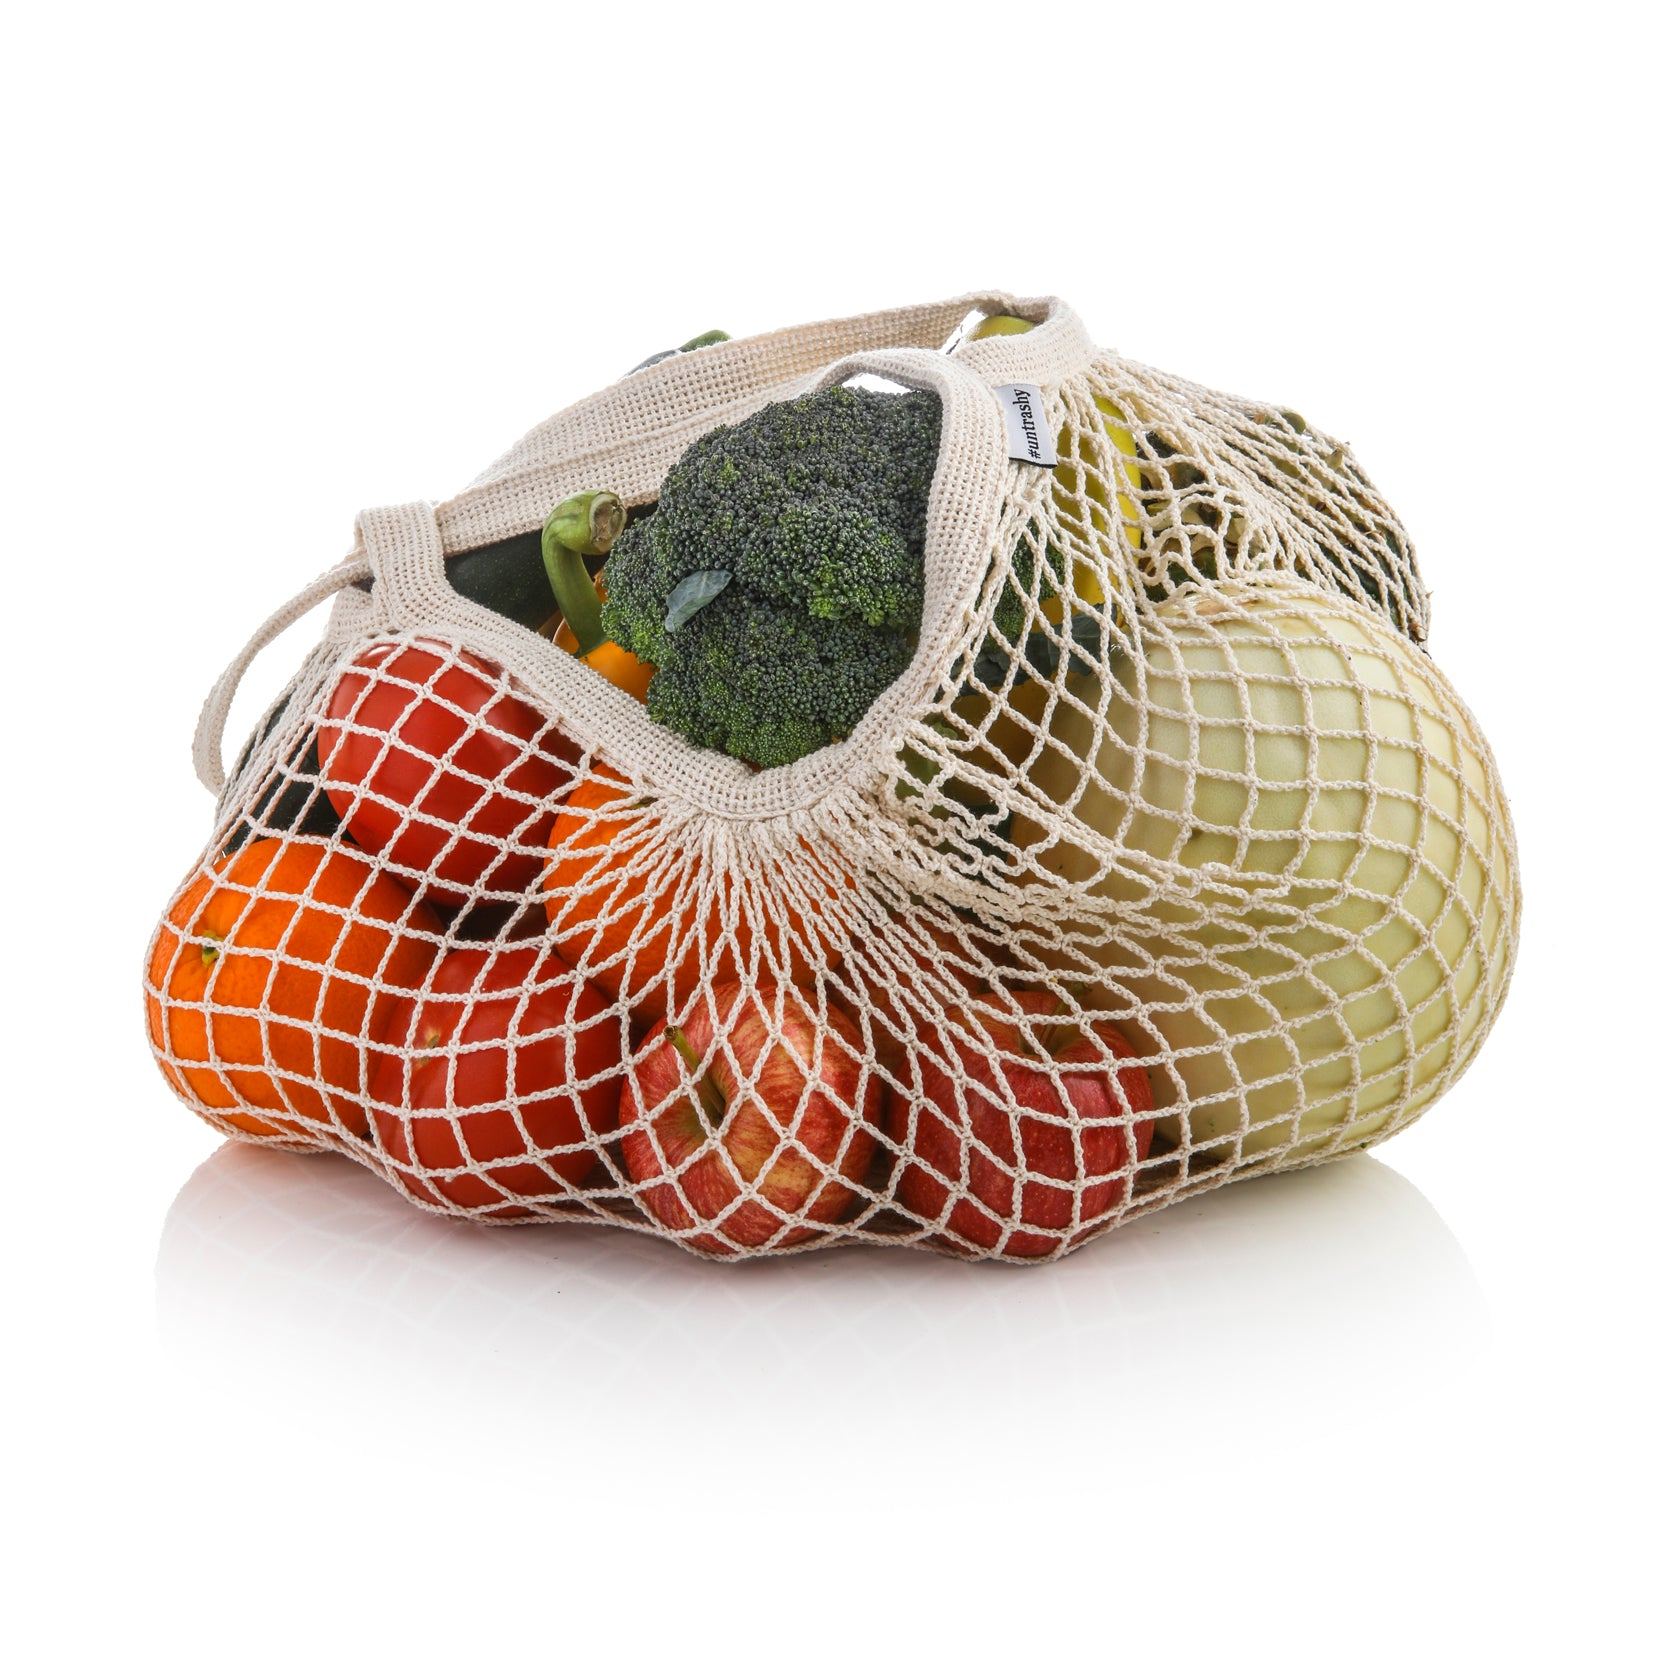 organic cotton string bag with fruit and vegetables